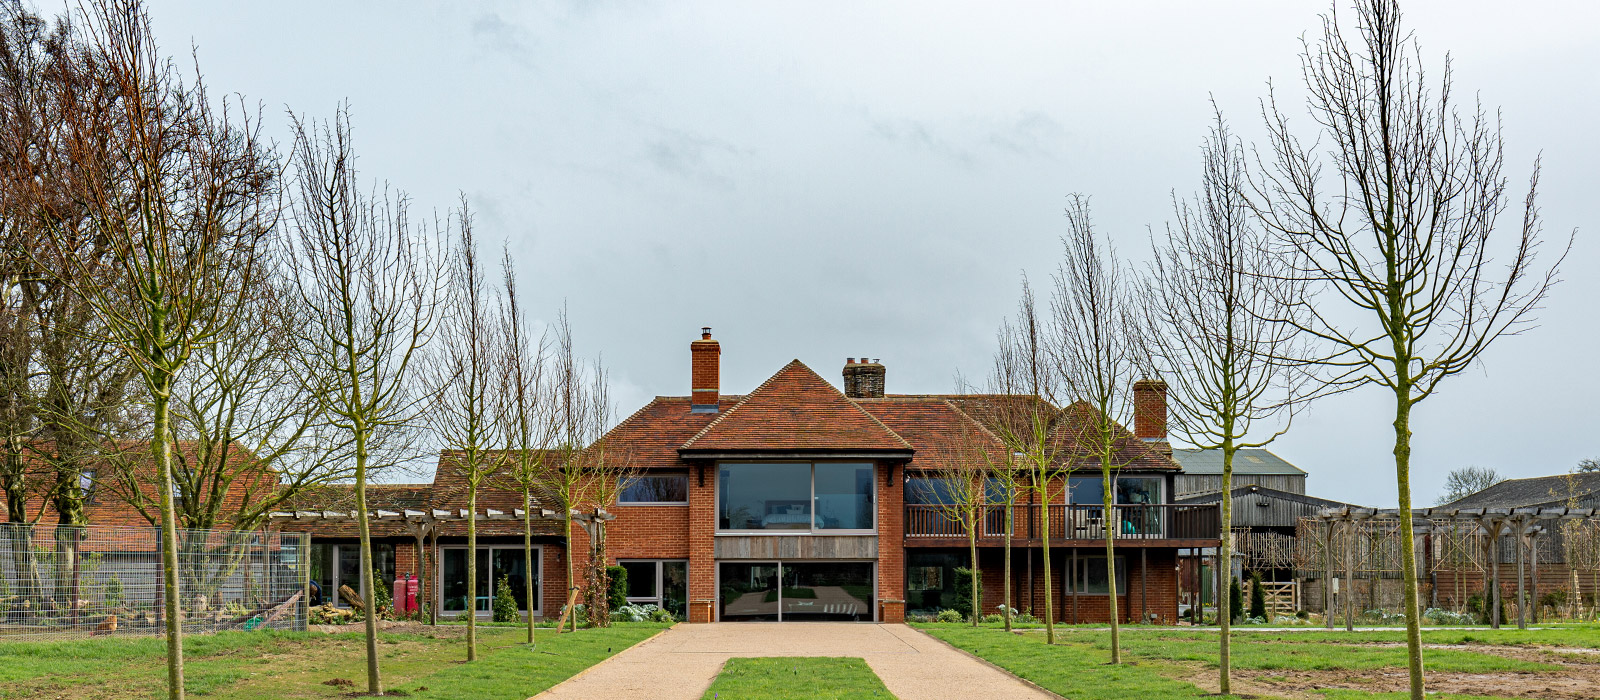 gyd-architecture   contemporary extension to old farm house